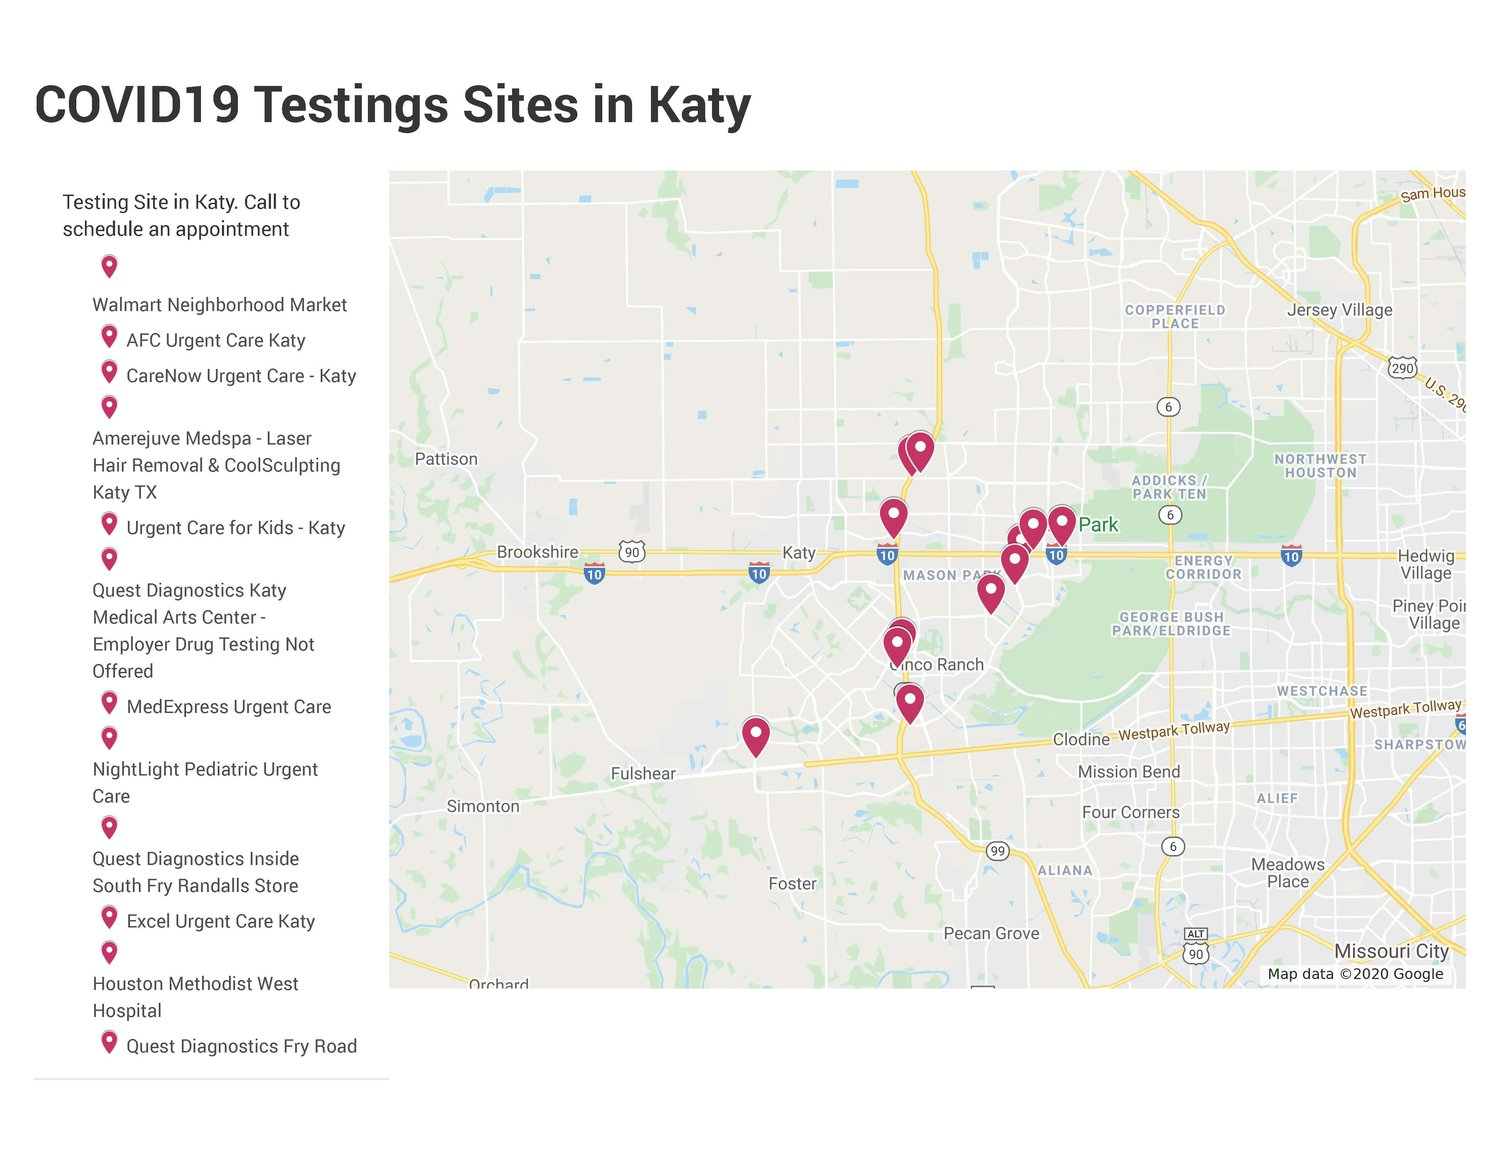 The above locations offer COVID-19 testing in the Katy area at no cost. A detailed interactive map is available at the bottom of this article.